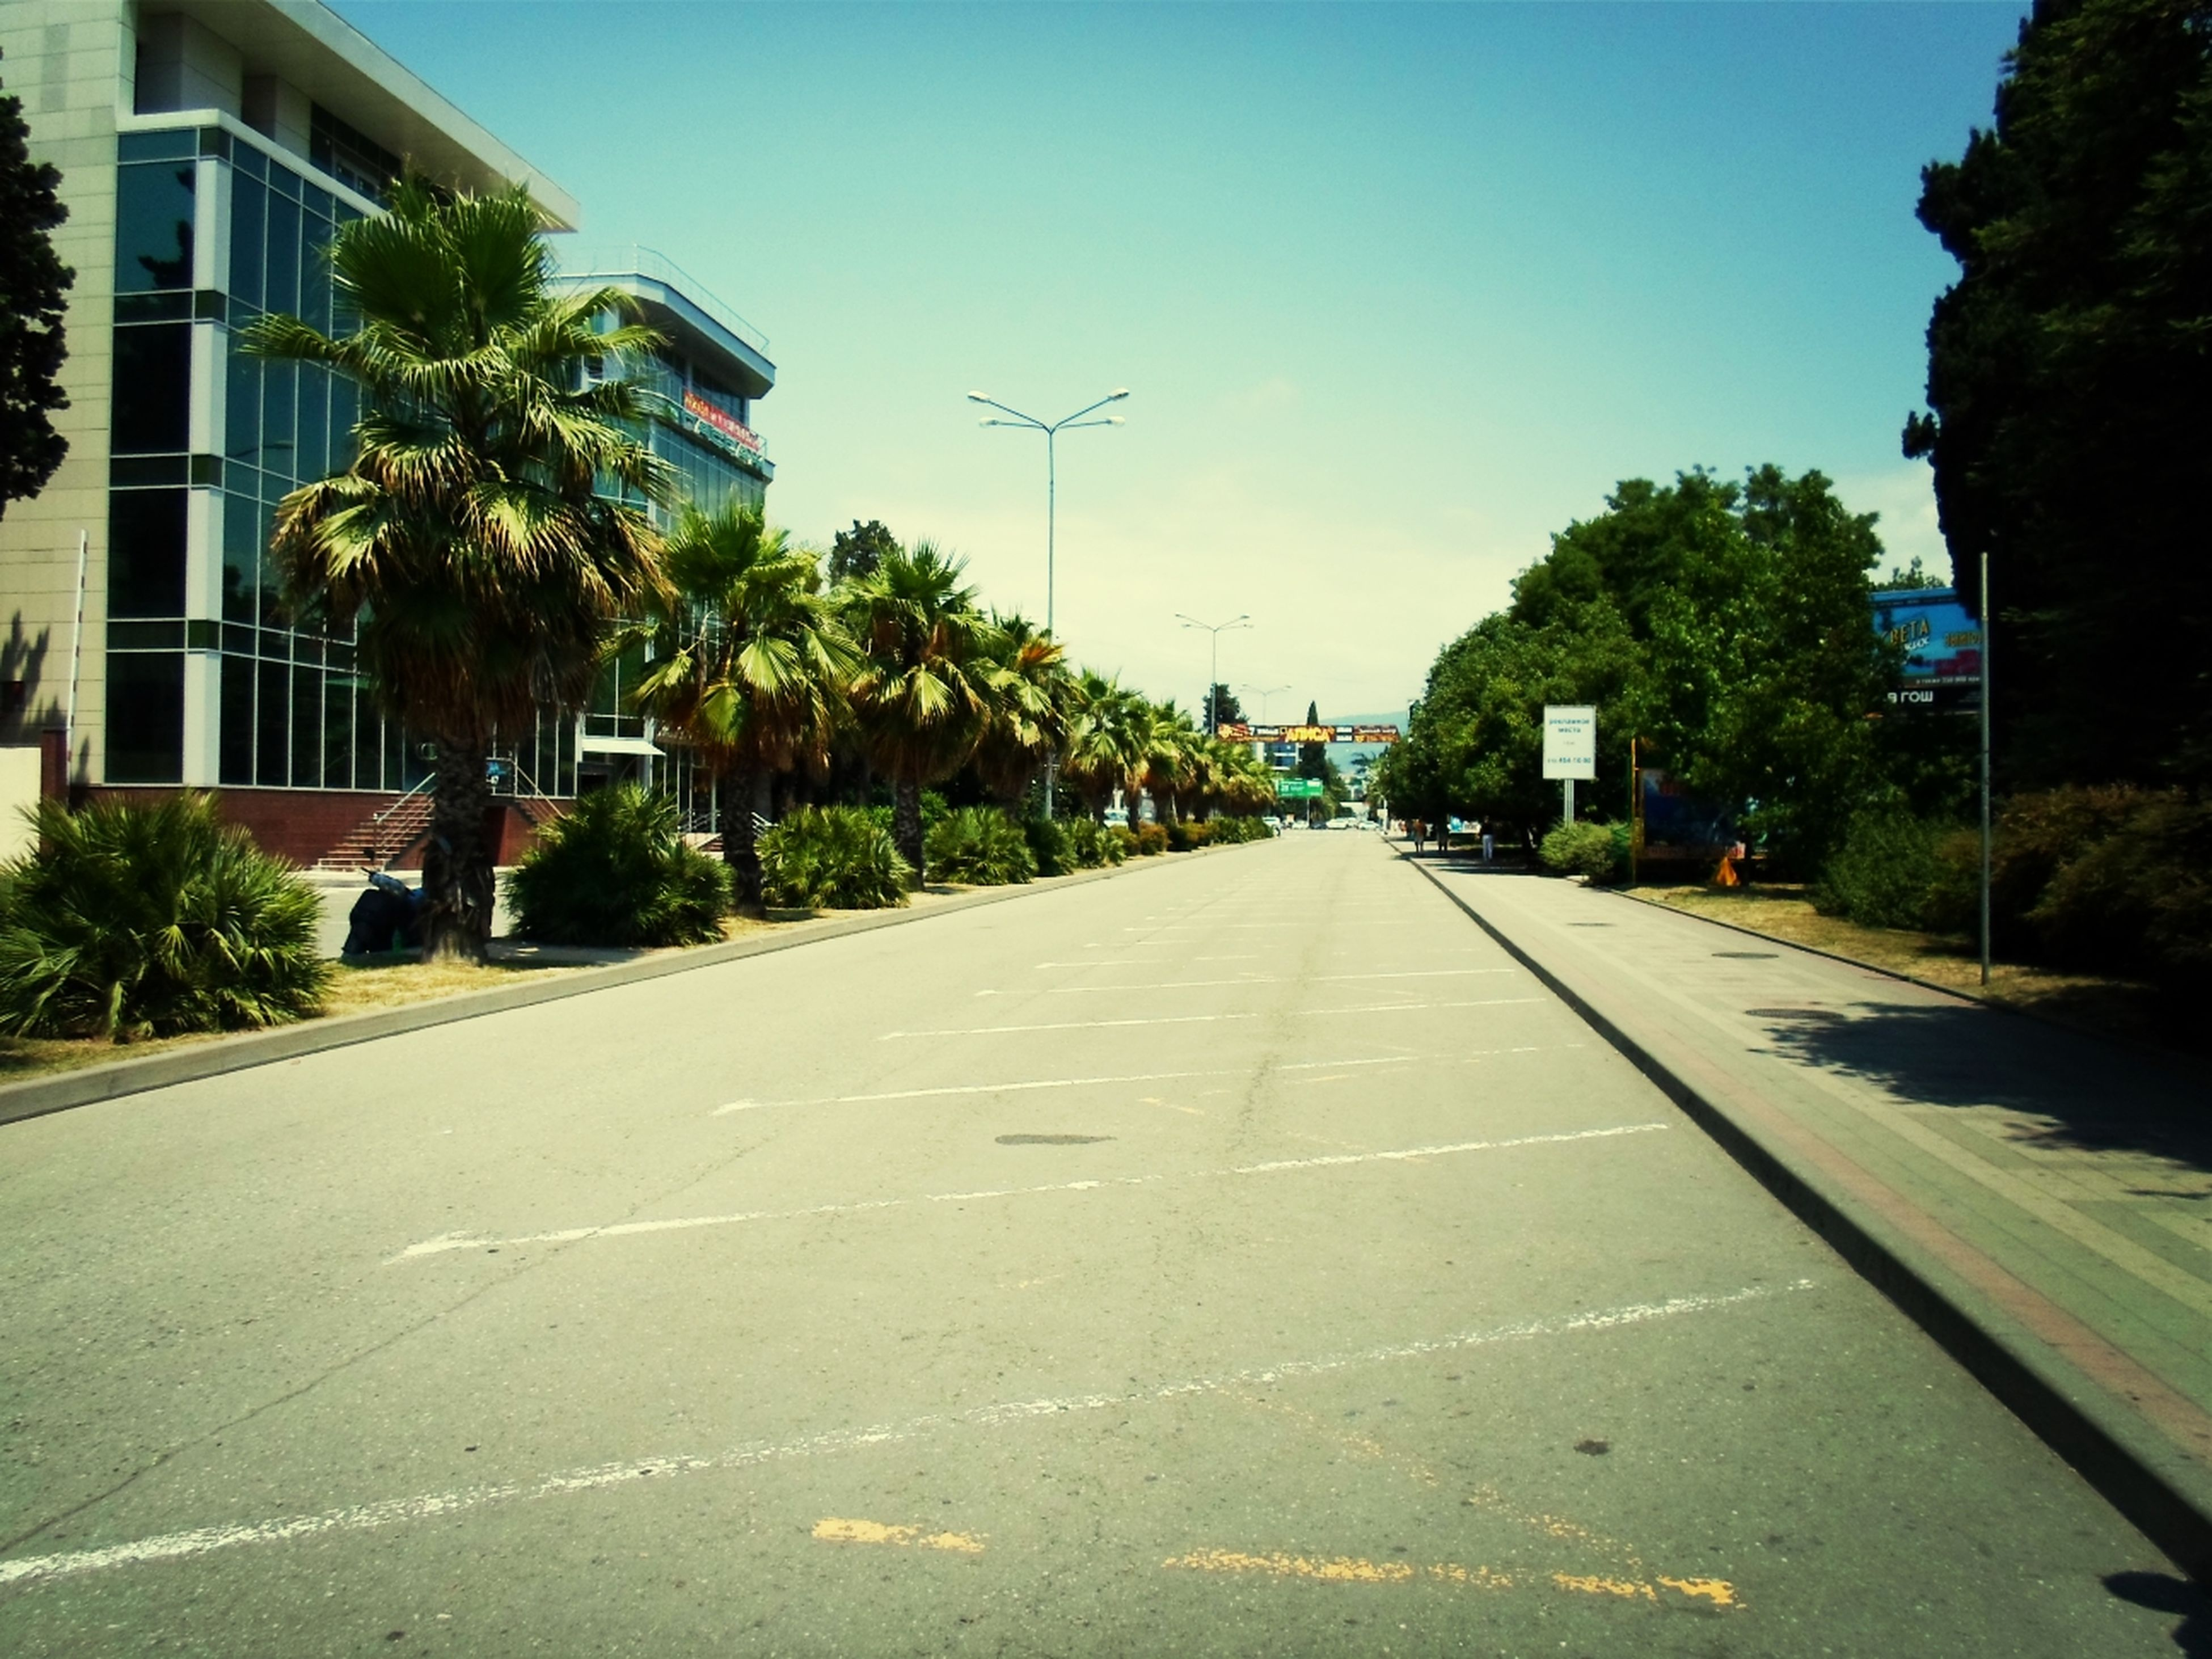 the way forward, transportation, road, tree, road marking, diminishing perspective, street, vanishing point, sky, asphalt, building exterior, clear sky, car, empty, built structure, empty road, architecture, street light, mode of transport, outdoors